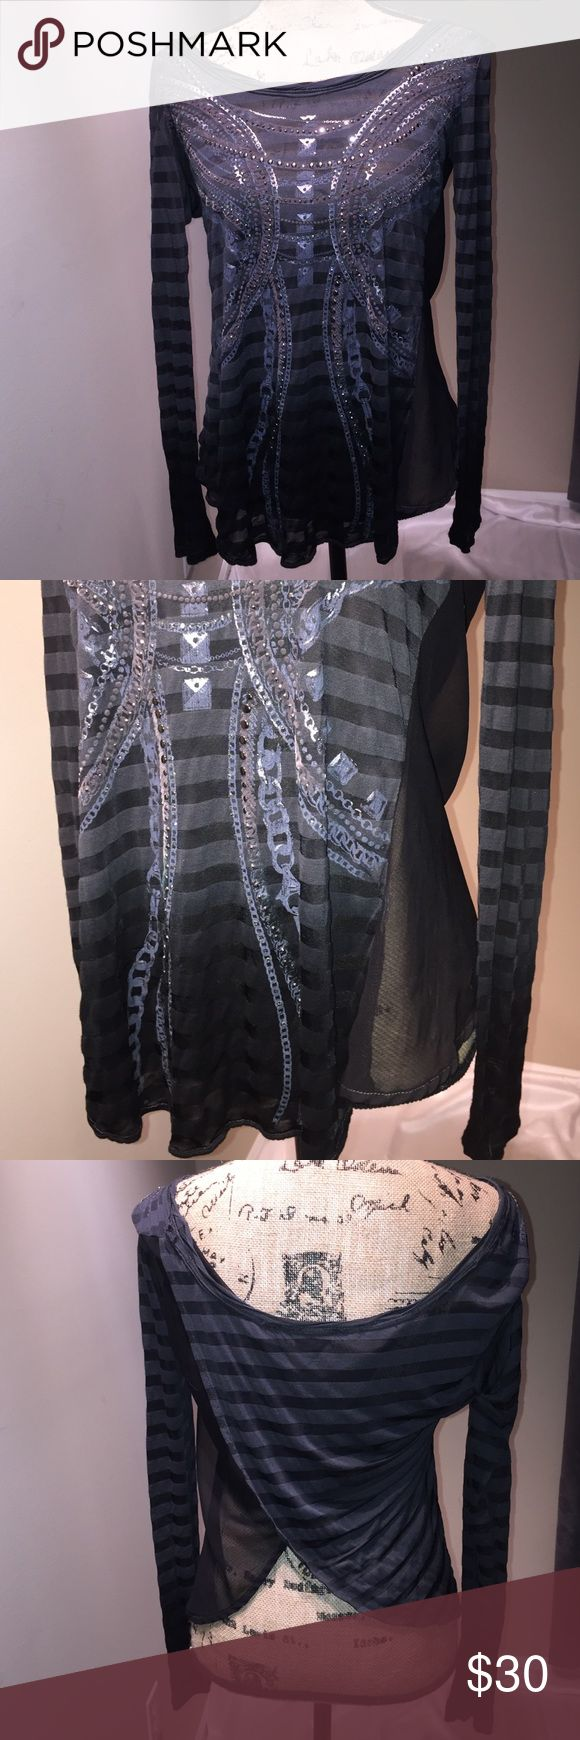 EUC Miss Me Tulip Back Top black, gray & gorgeous! EUC Miss Me brand tulip back top in black and gray with gorgeous detail. Measurements are 14 across the shoulders and 26 inches long. Comes from a smoke free home and ships in one business day, thank you! Miss Me Tops Tees - Long Sleeve